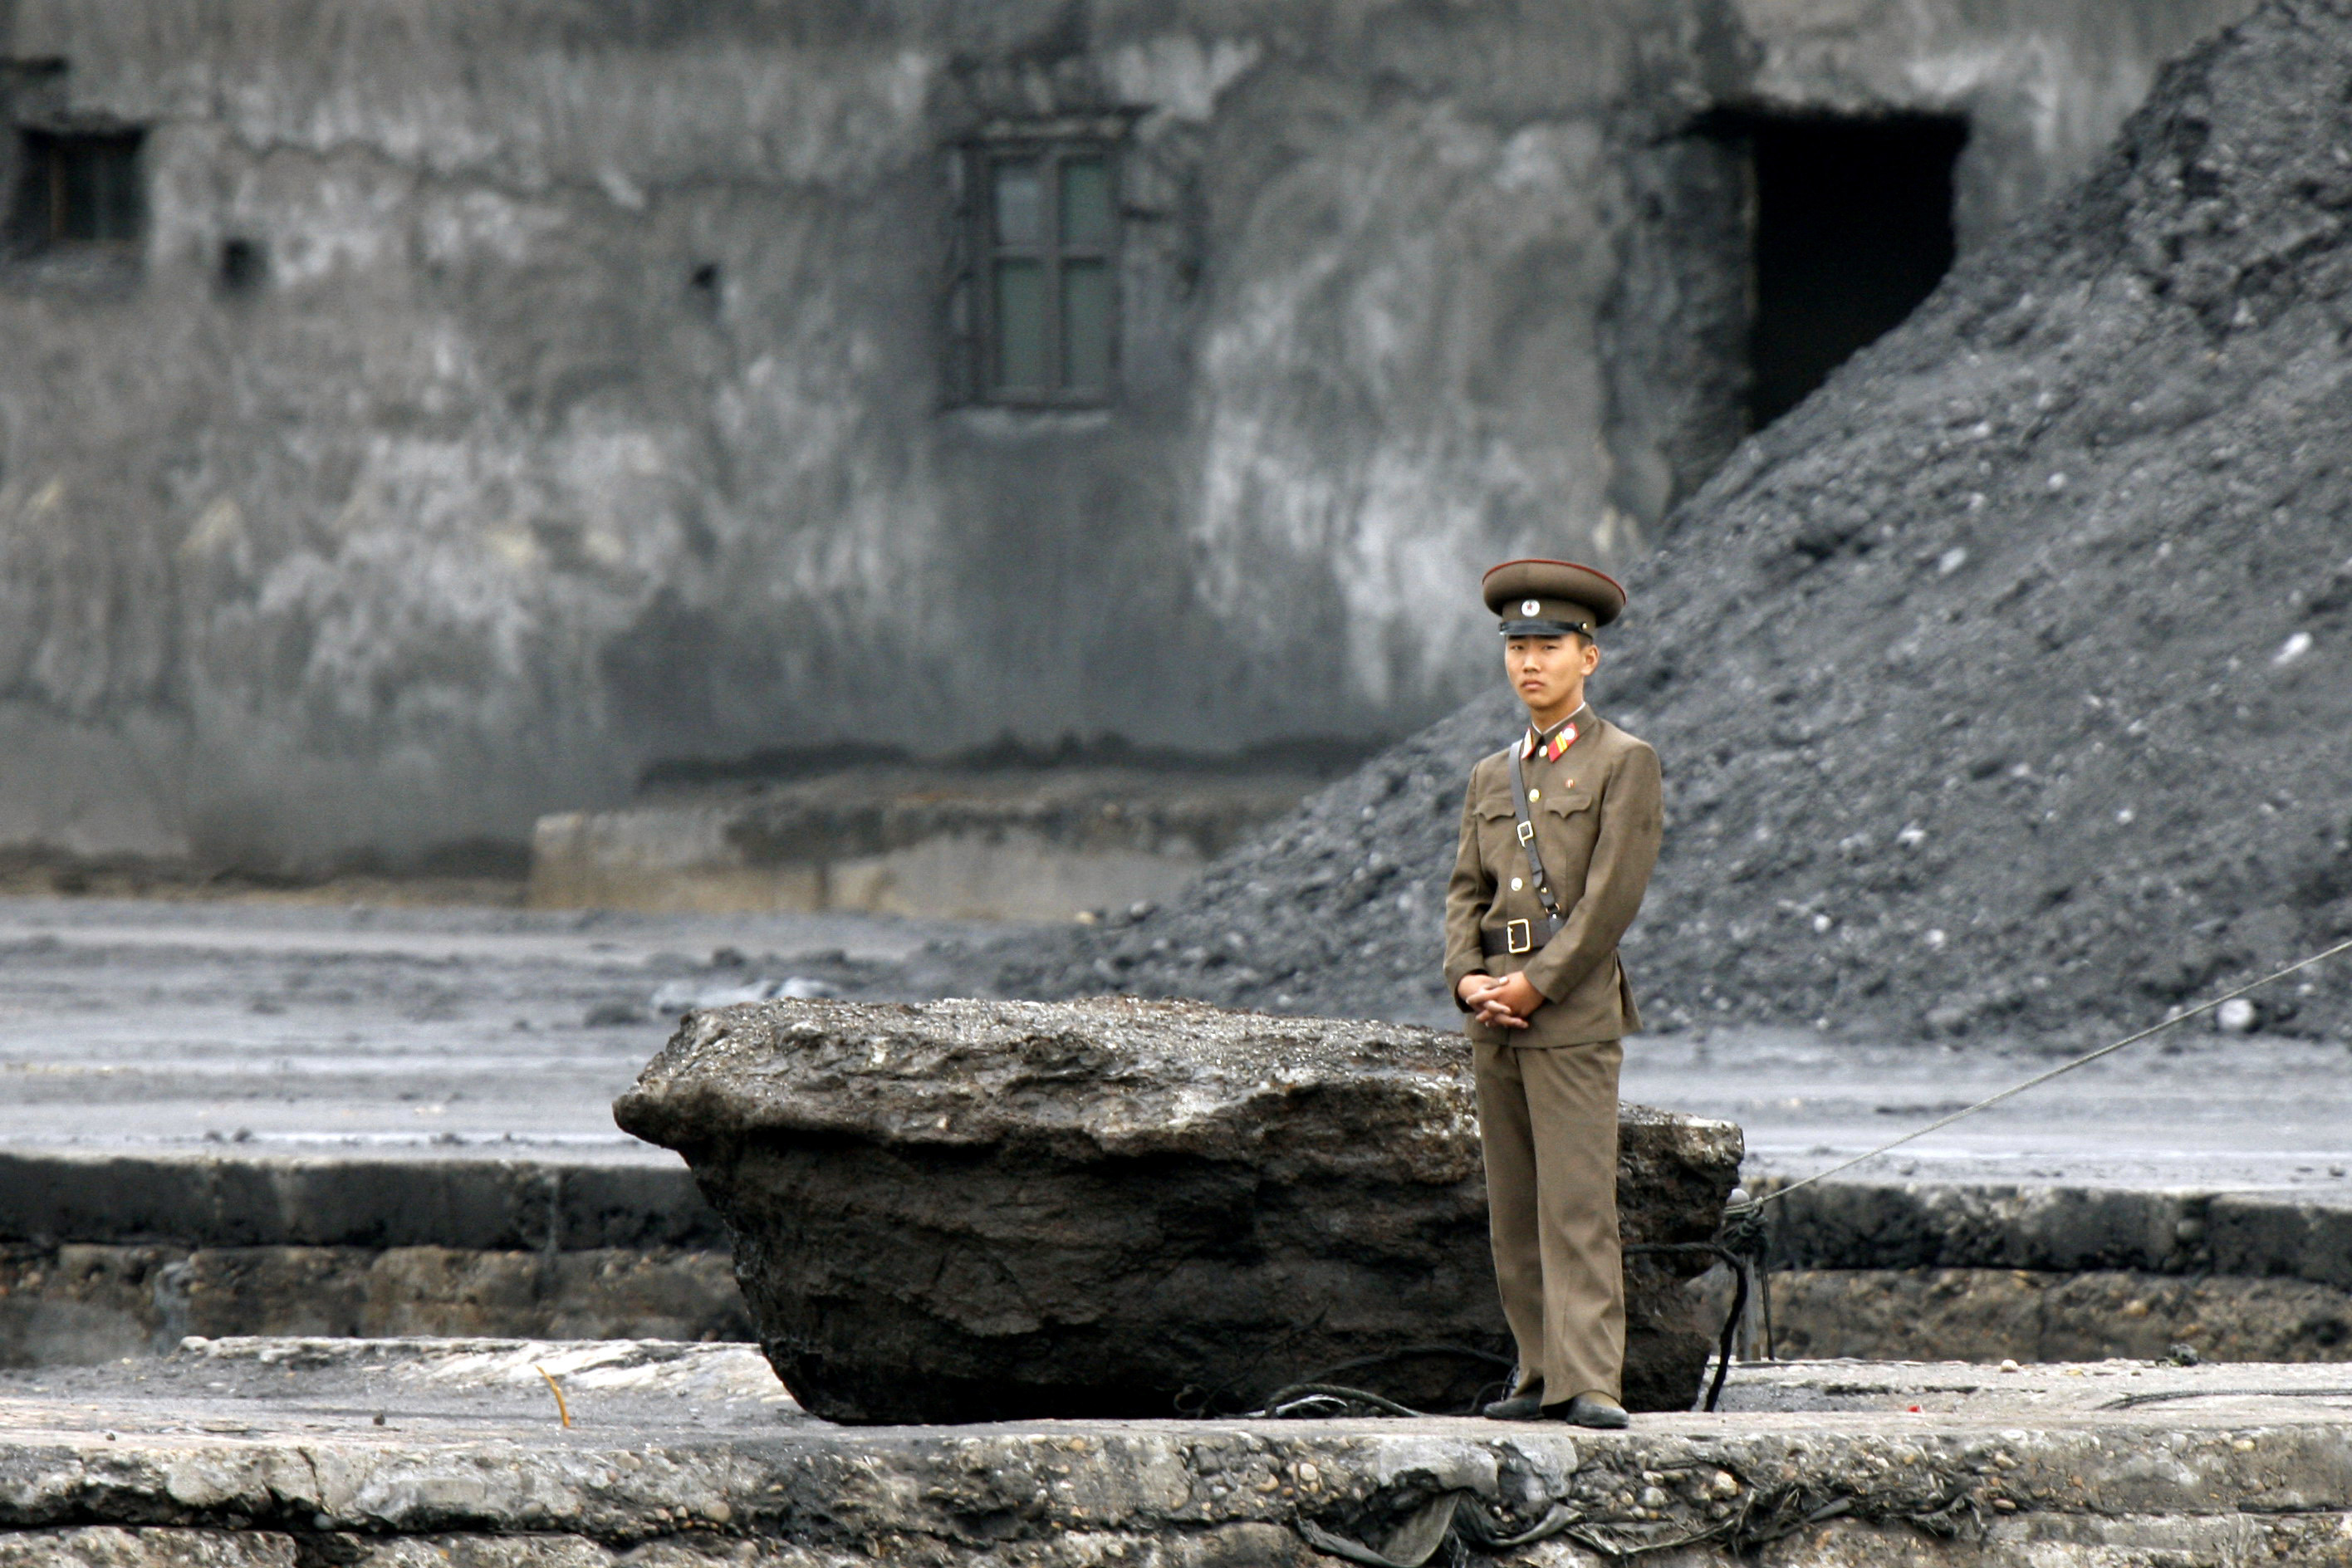 A North Korean soldier stands on the river bank in Sinuiju, North Korea, opposite the Chinese border city of Dandong, on June 12, 2013.